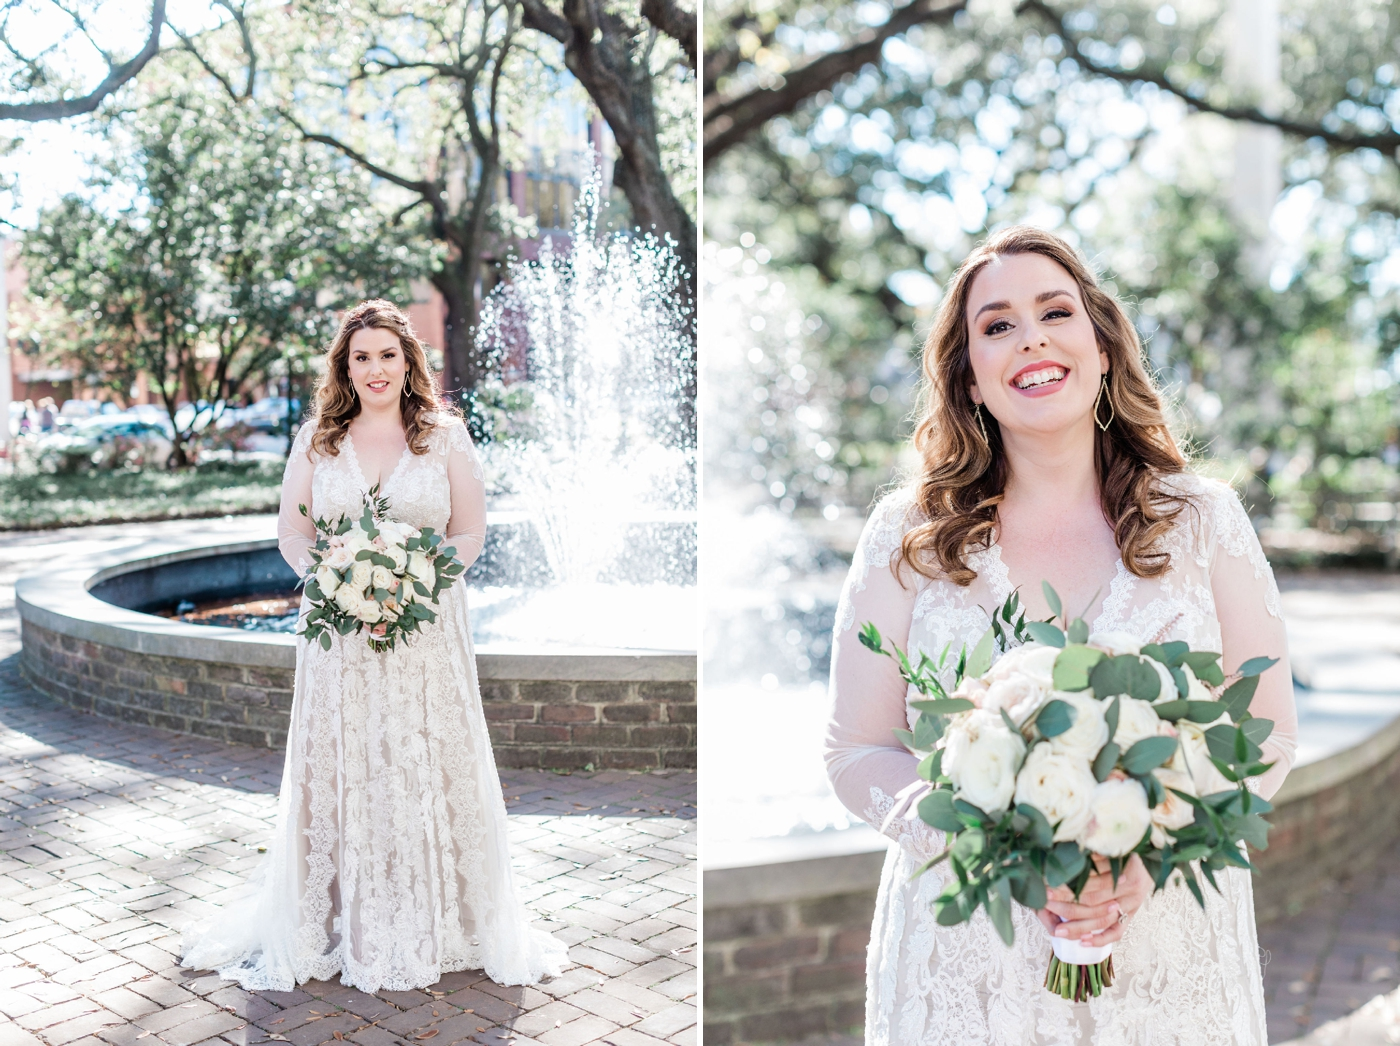 Danielle and Sean's Savannah Wedding with flowers by Kato Designs